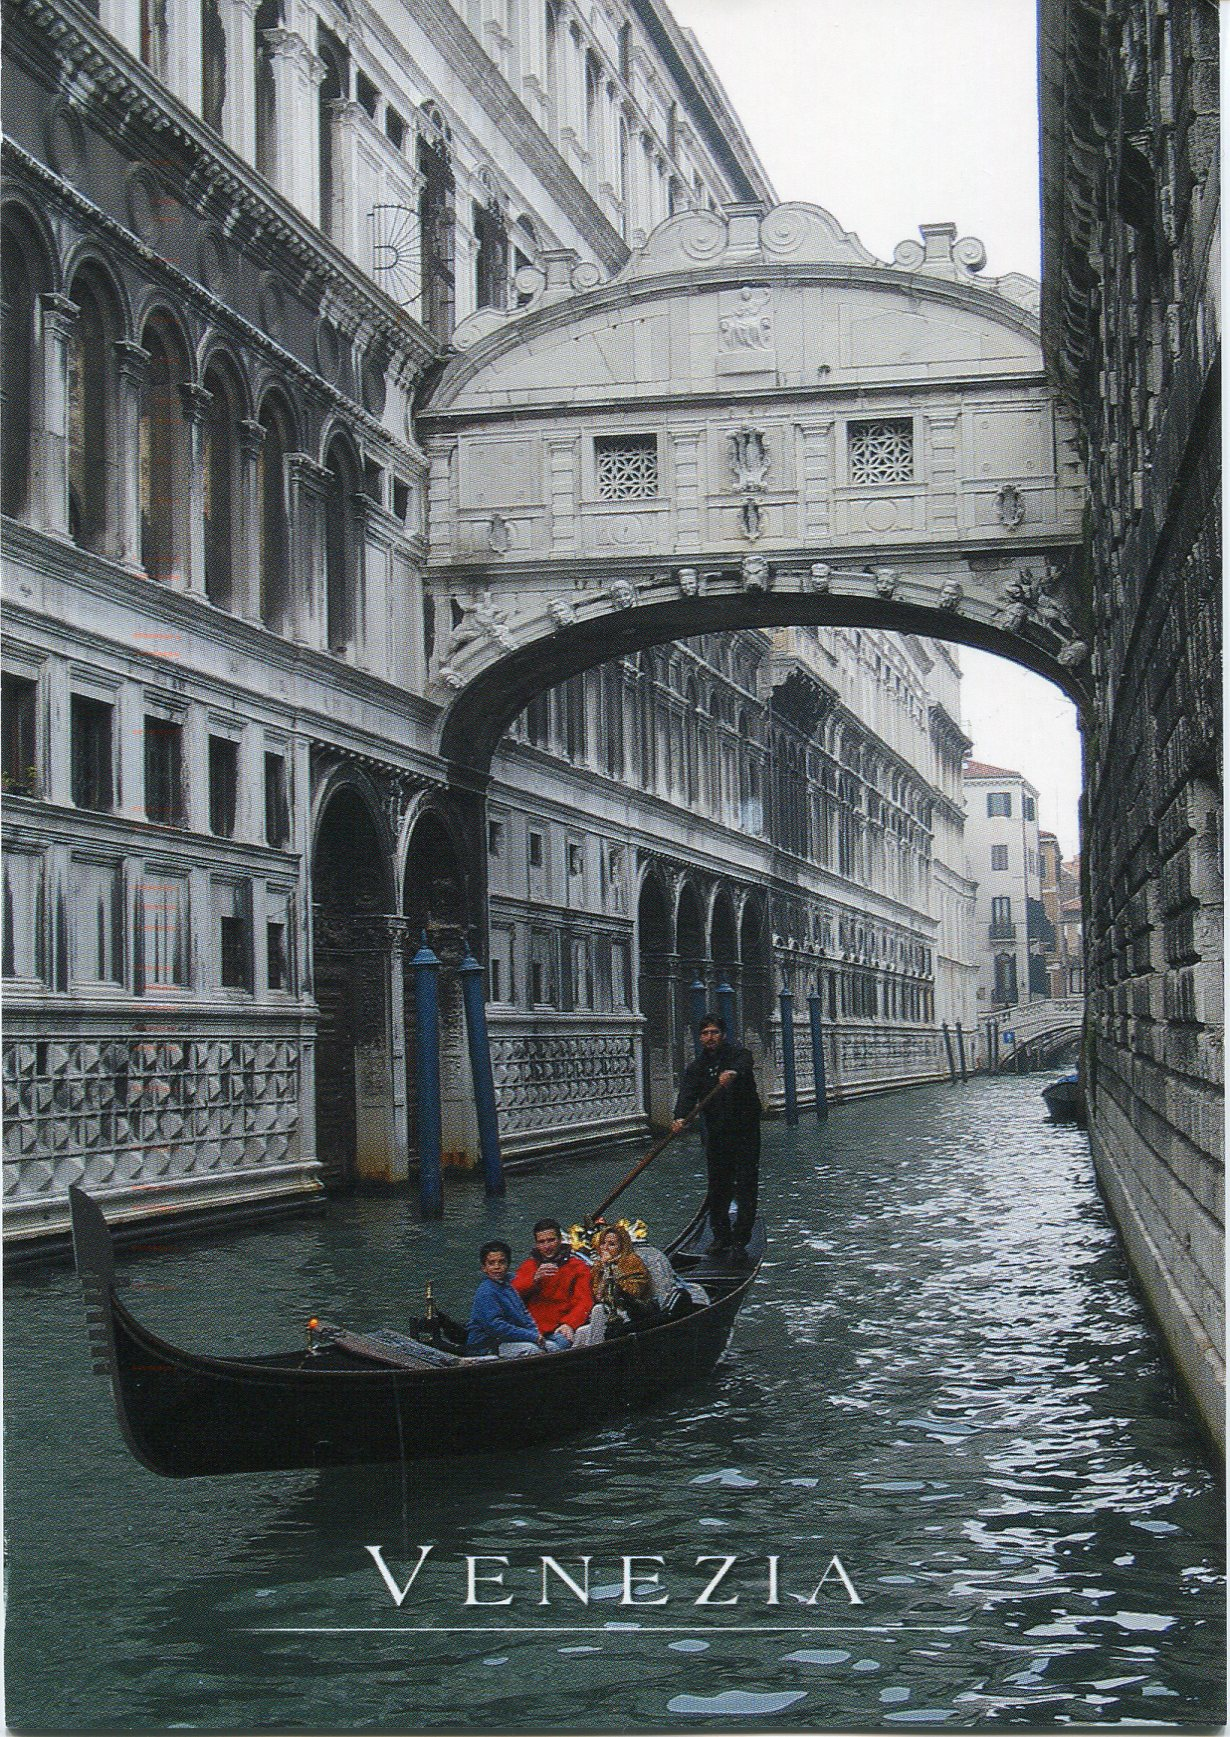 essay about venice italy Venice is elegant, precious, inimitable, entertaining, and romantic it is a jewel in the italian touristic landscape, where churches, buildings, old bridges.